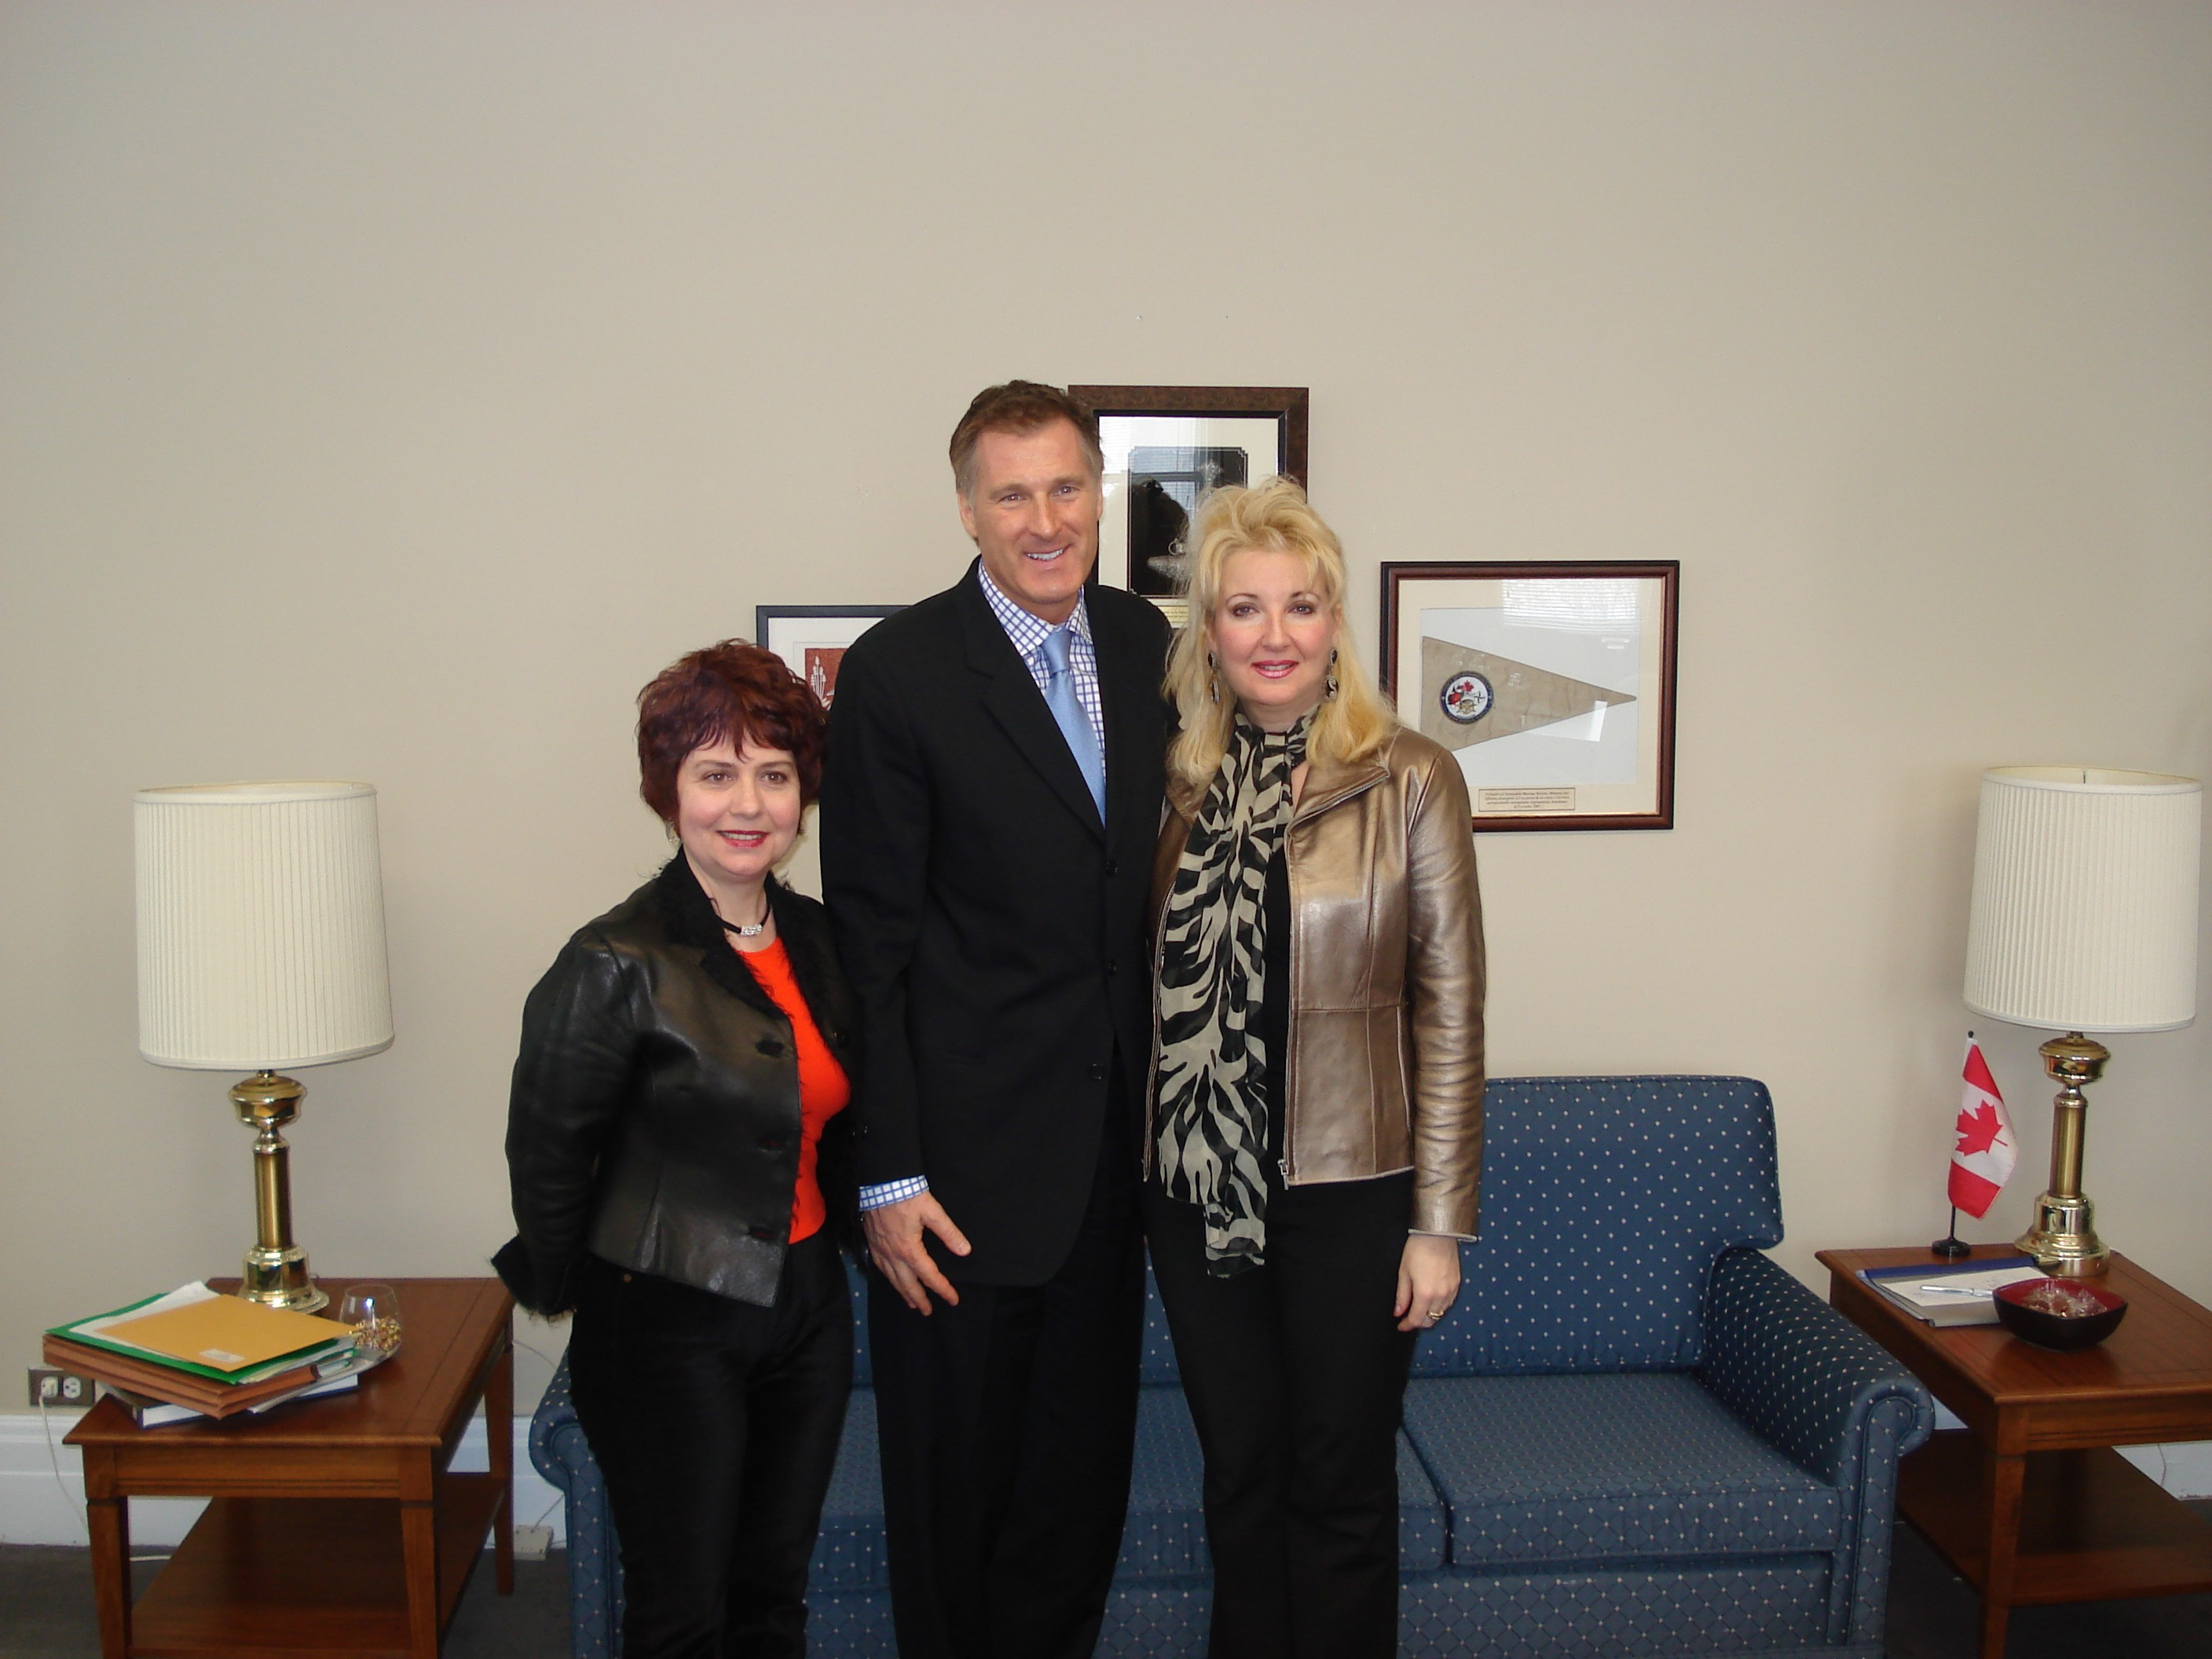 Maxime Bernier with Shpir and Shymko